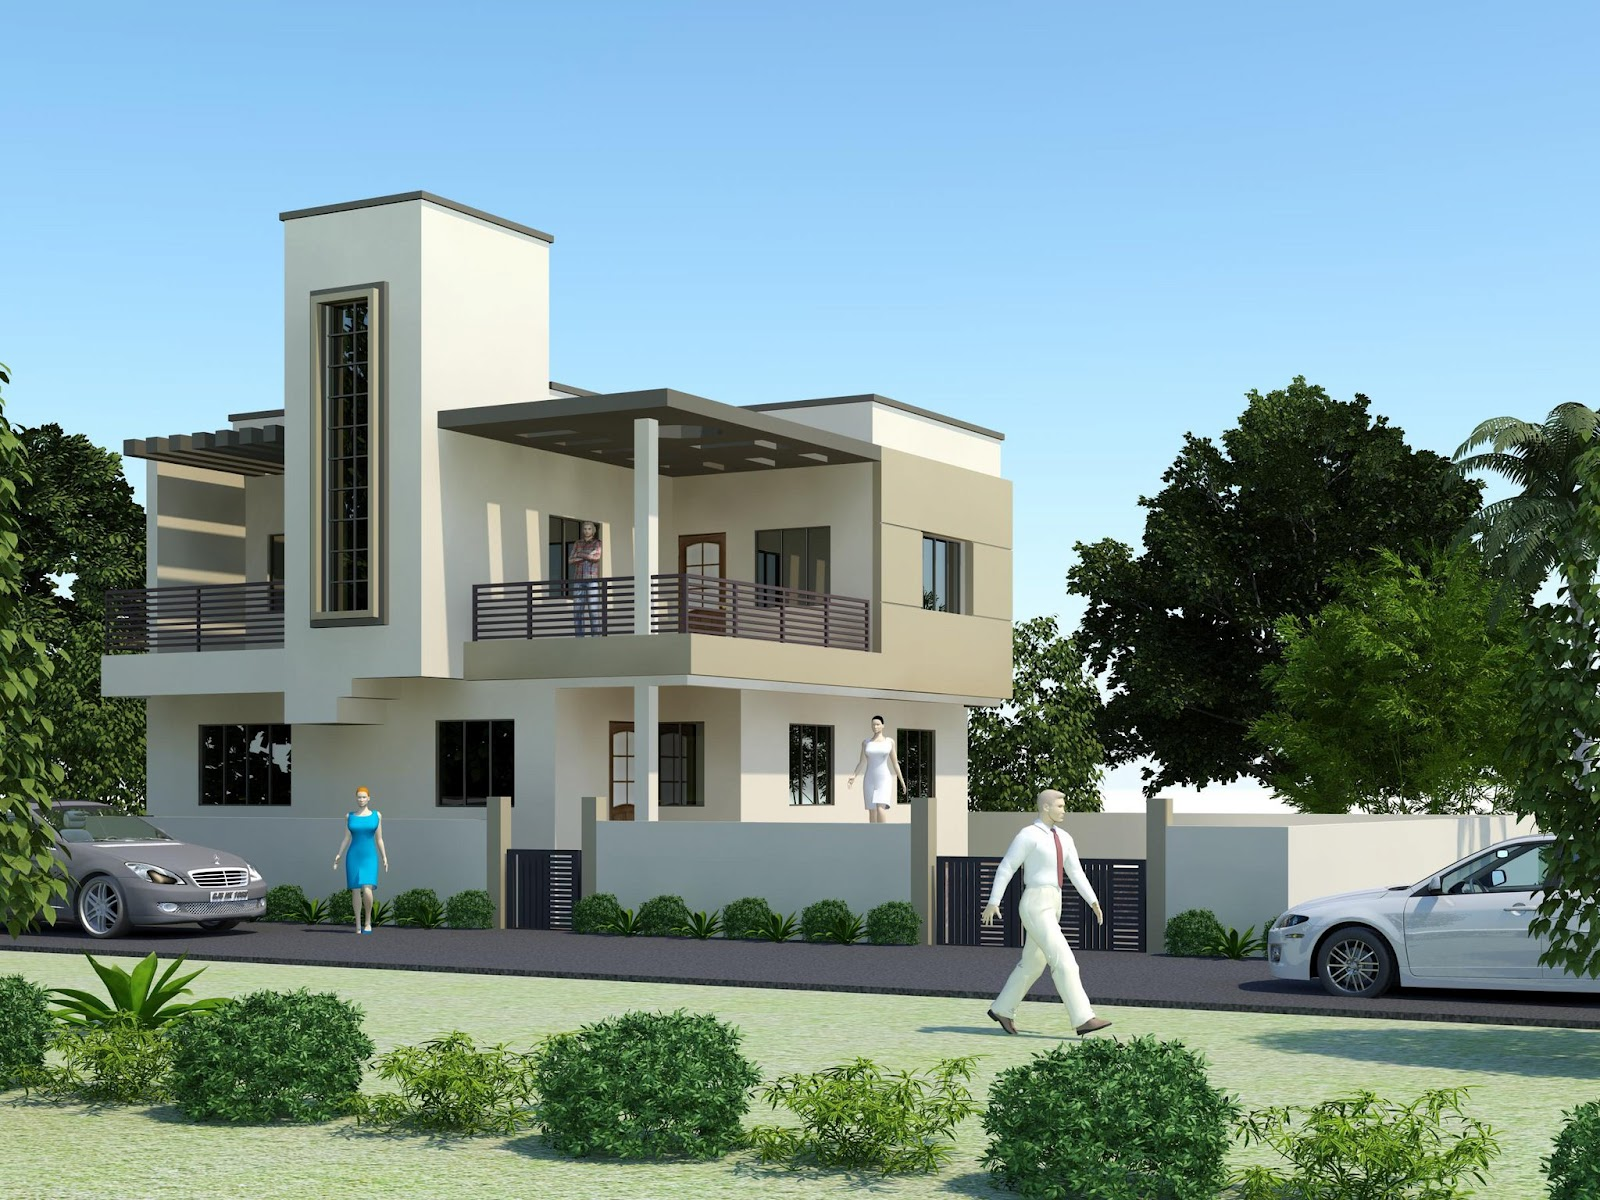 New home designs latest modern homes exterior designs for Building front design